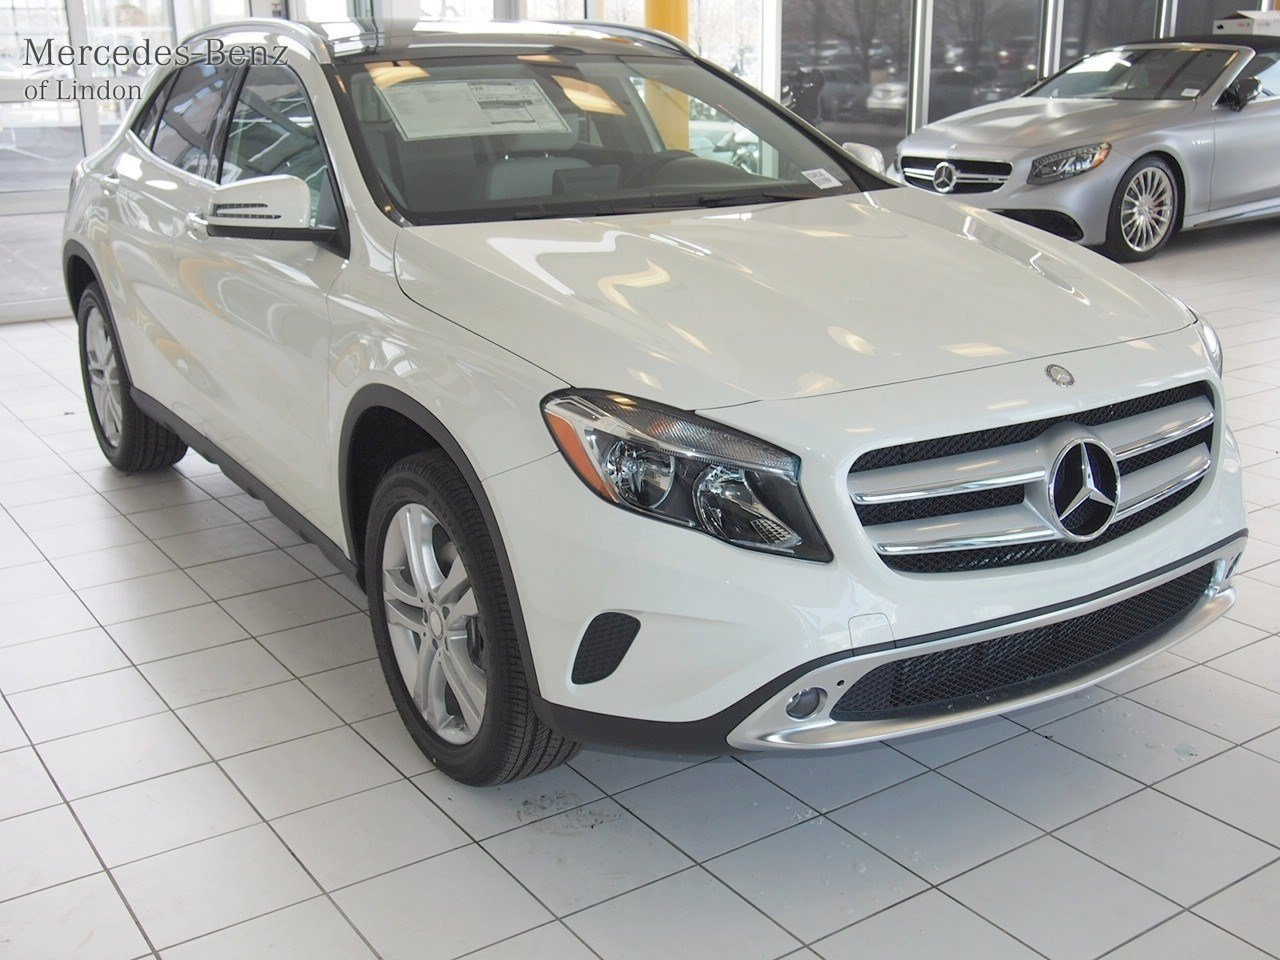 Pre owned 2017 mercedes benz gla gla 250 suv in lindon for Pre owned mercedes benz suv